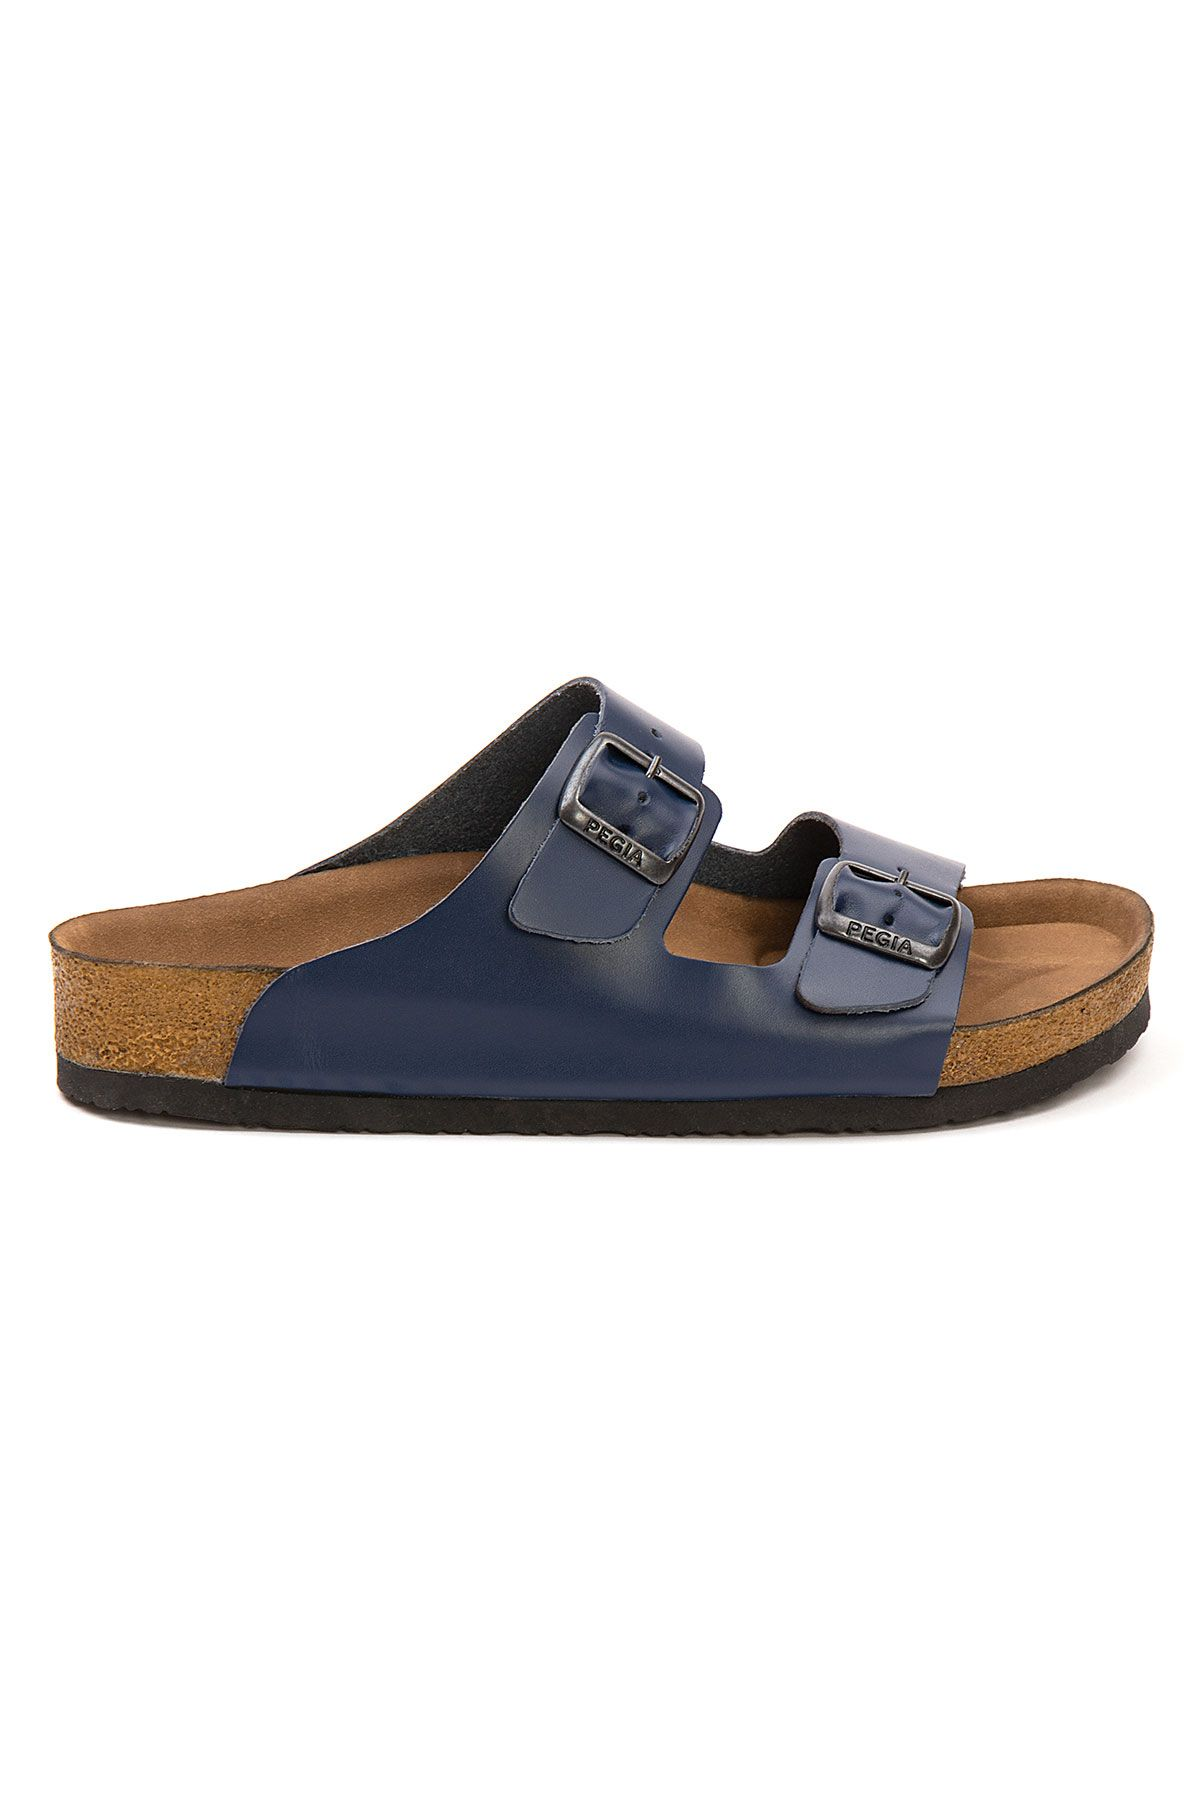 Pegia Women's Leather Strap Slippers 215521 Navy blue